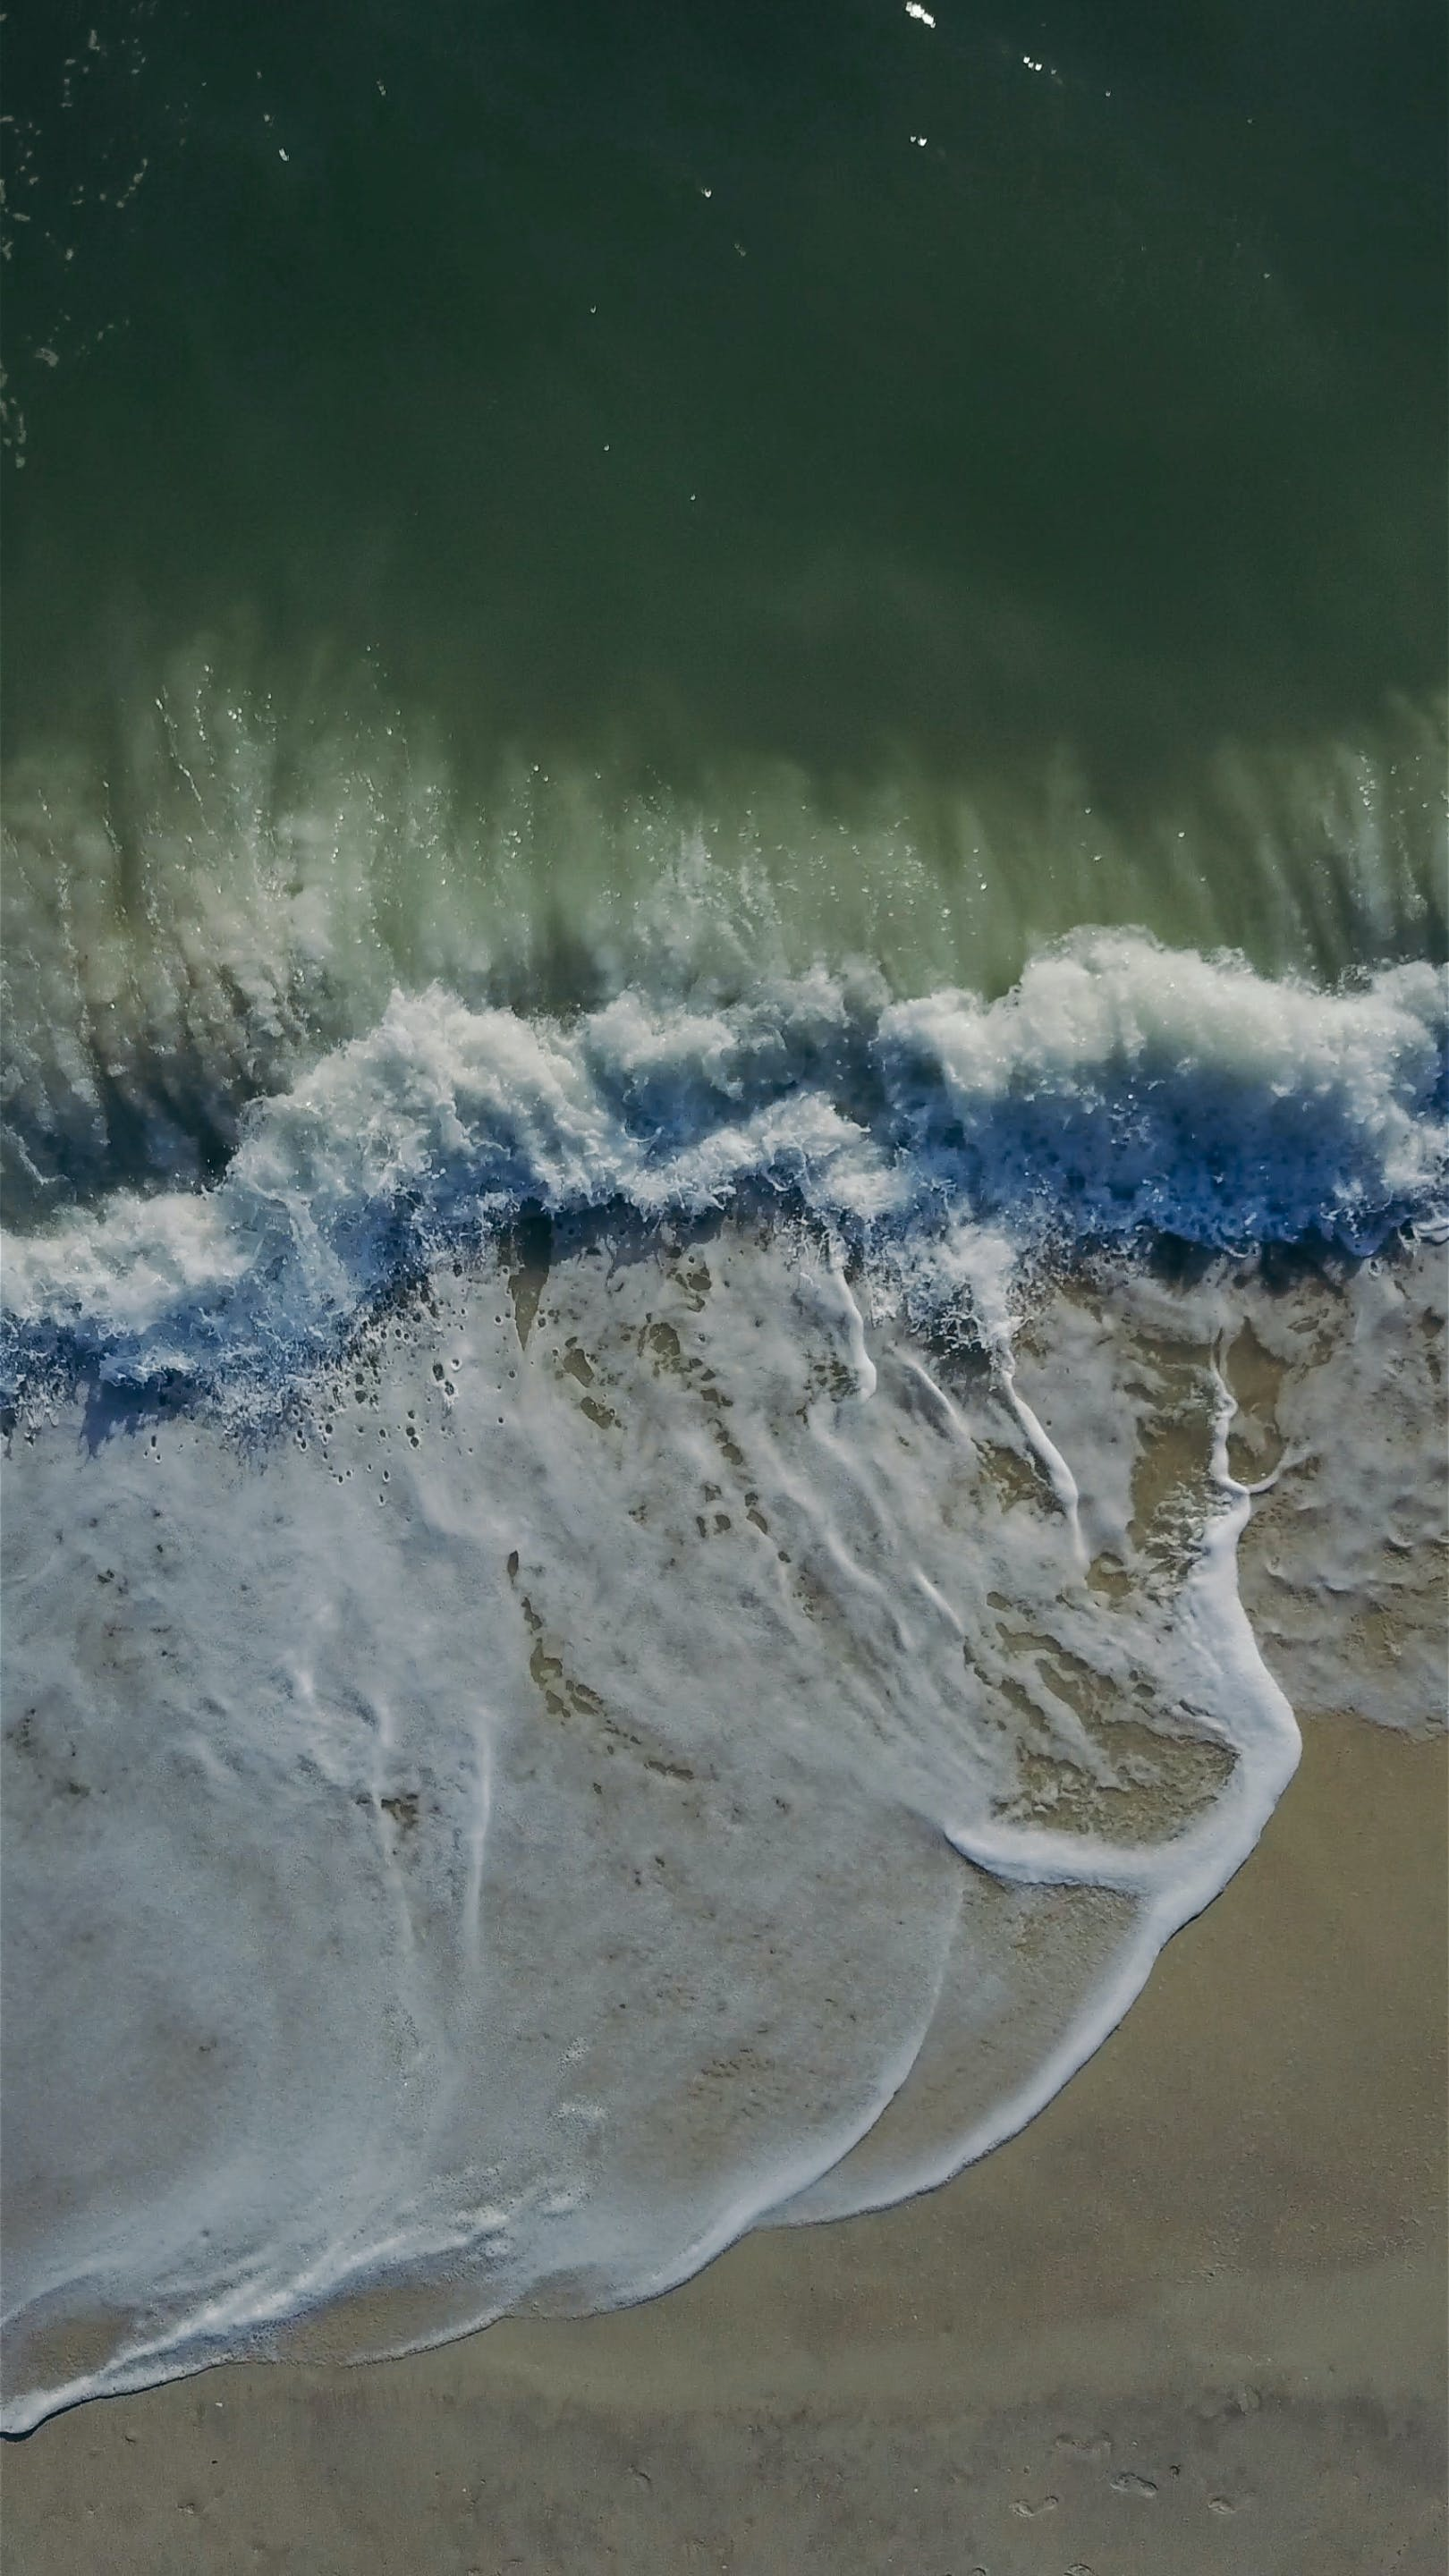 Time Lapse Photography of Shoreline